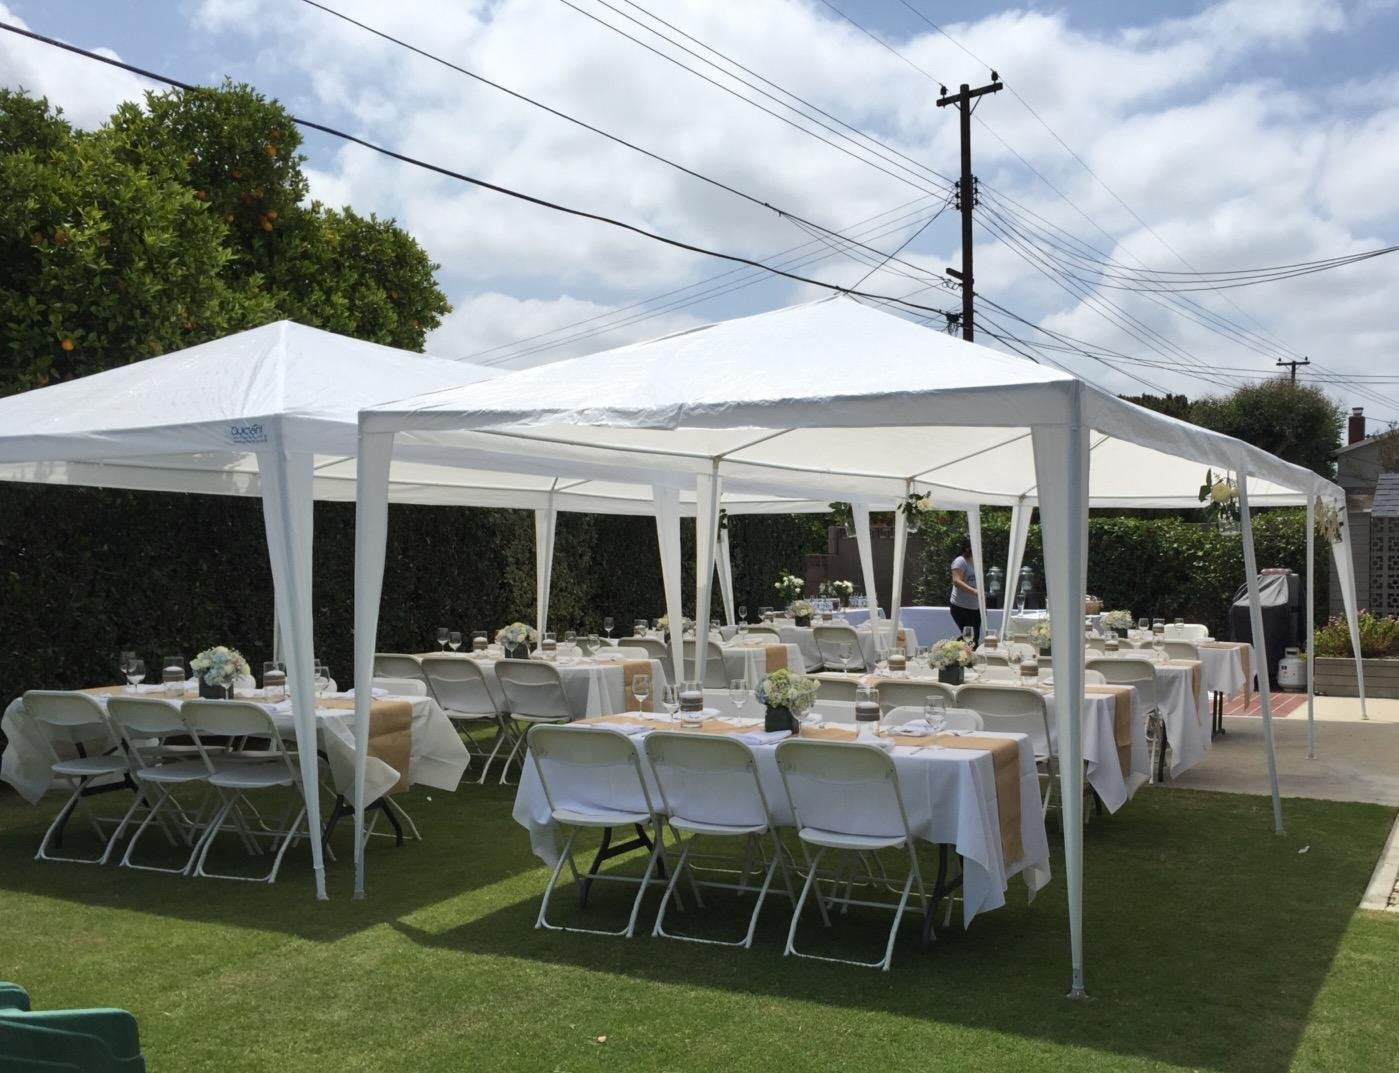 Amazon.com : Quictent 10u0027 X 30u0027 Party Tent Gazebo Wedding Canopy BBQ  Shelter Pavilion With Removable Sidewalls U0026 Elegant Church (10u0027x30u0027) :  Family Tents ...